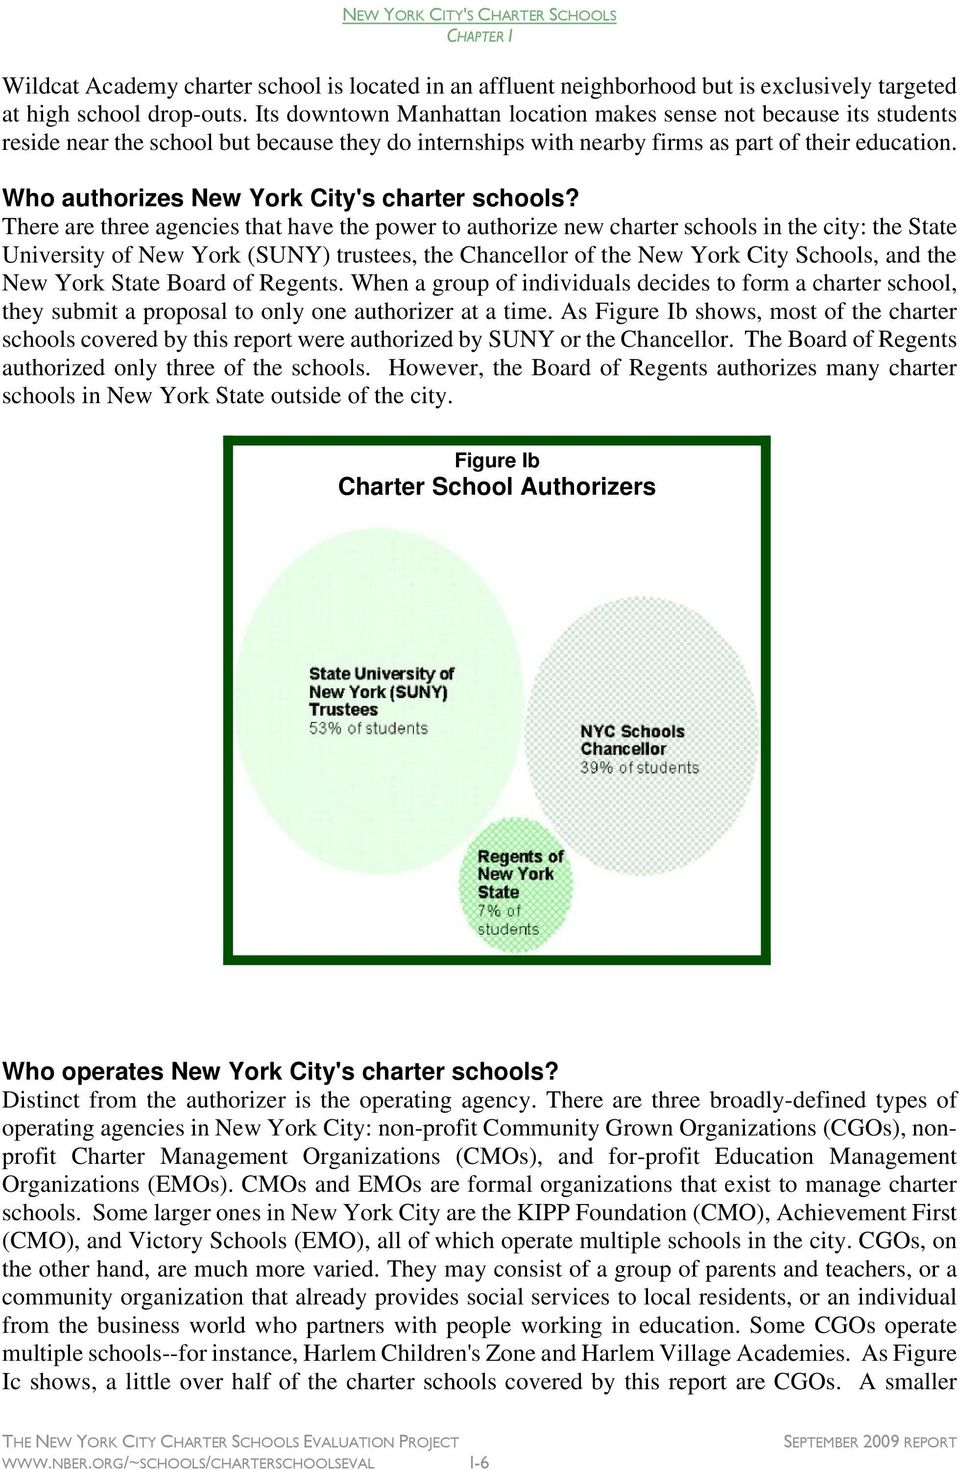 Who authorizes New York City's charter schools?